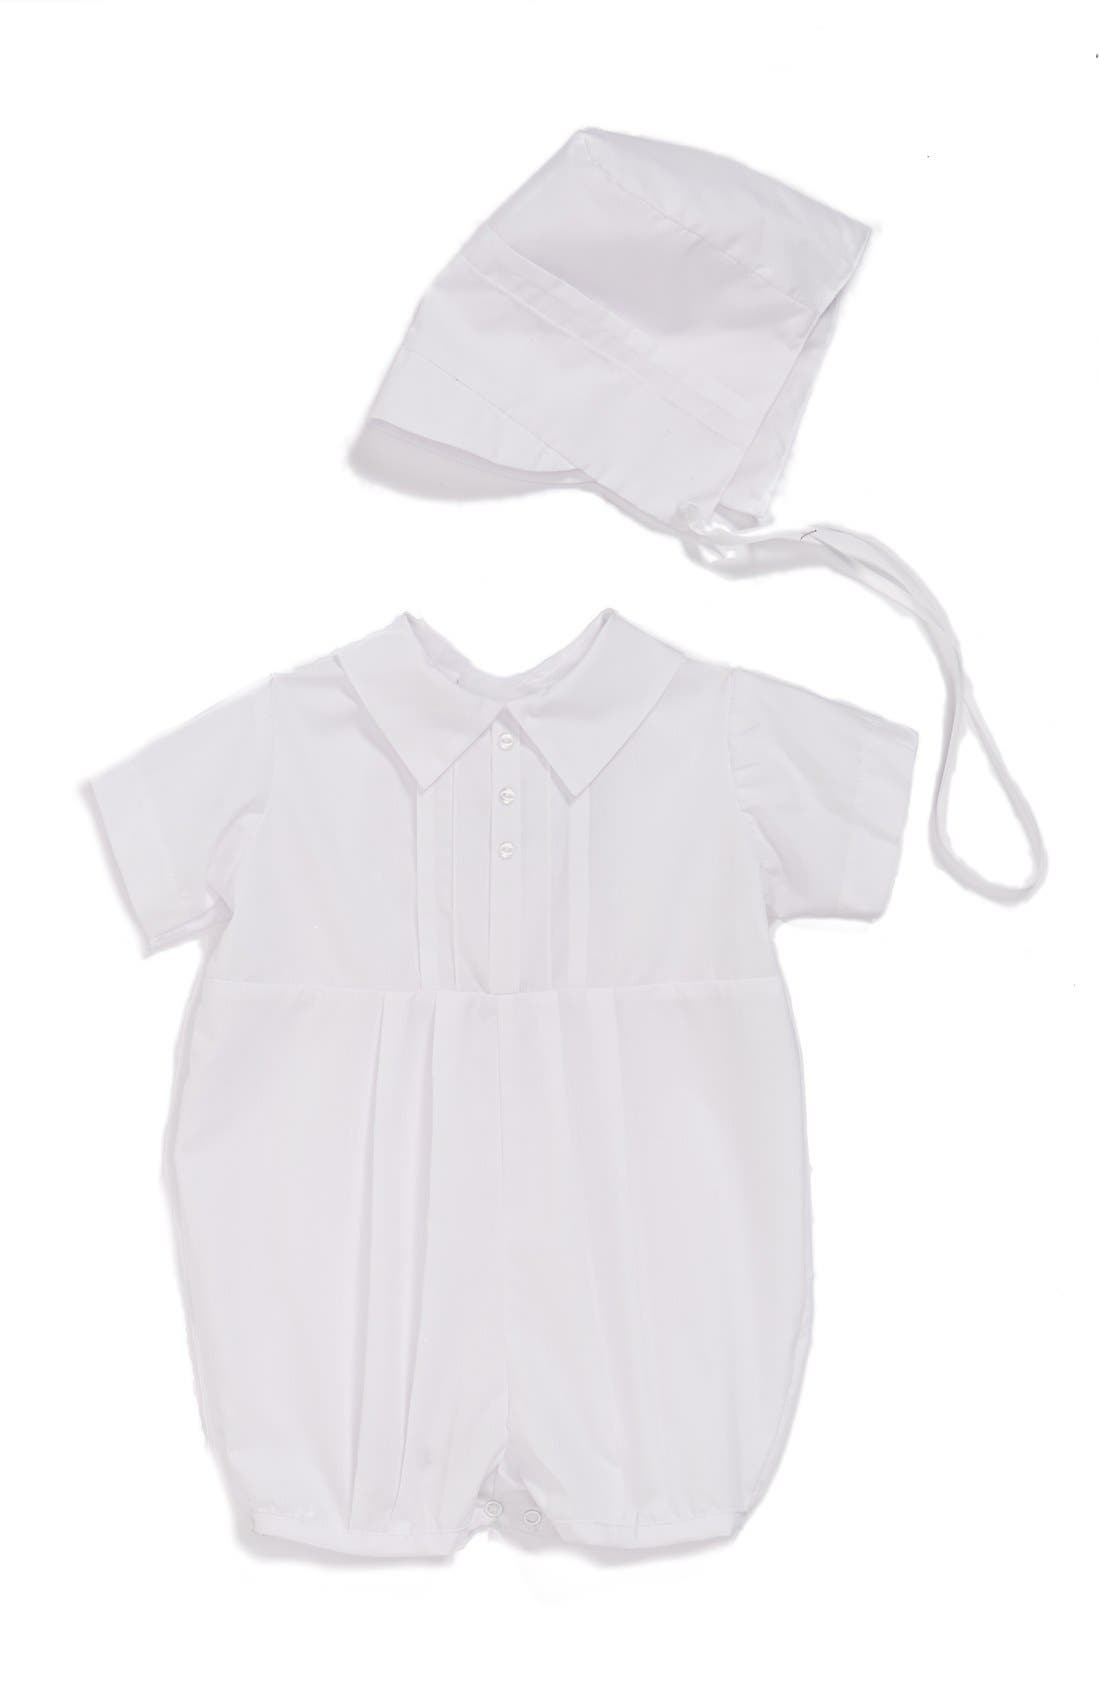 Christening Romper & Hat Set,                             Main thumbnail 1, color,                             White